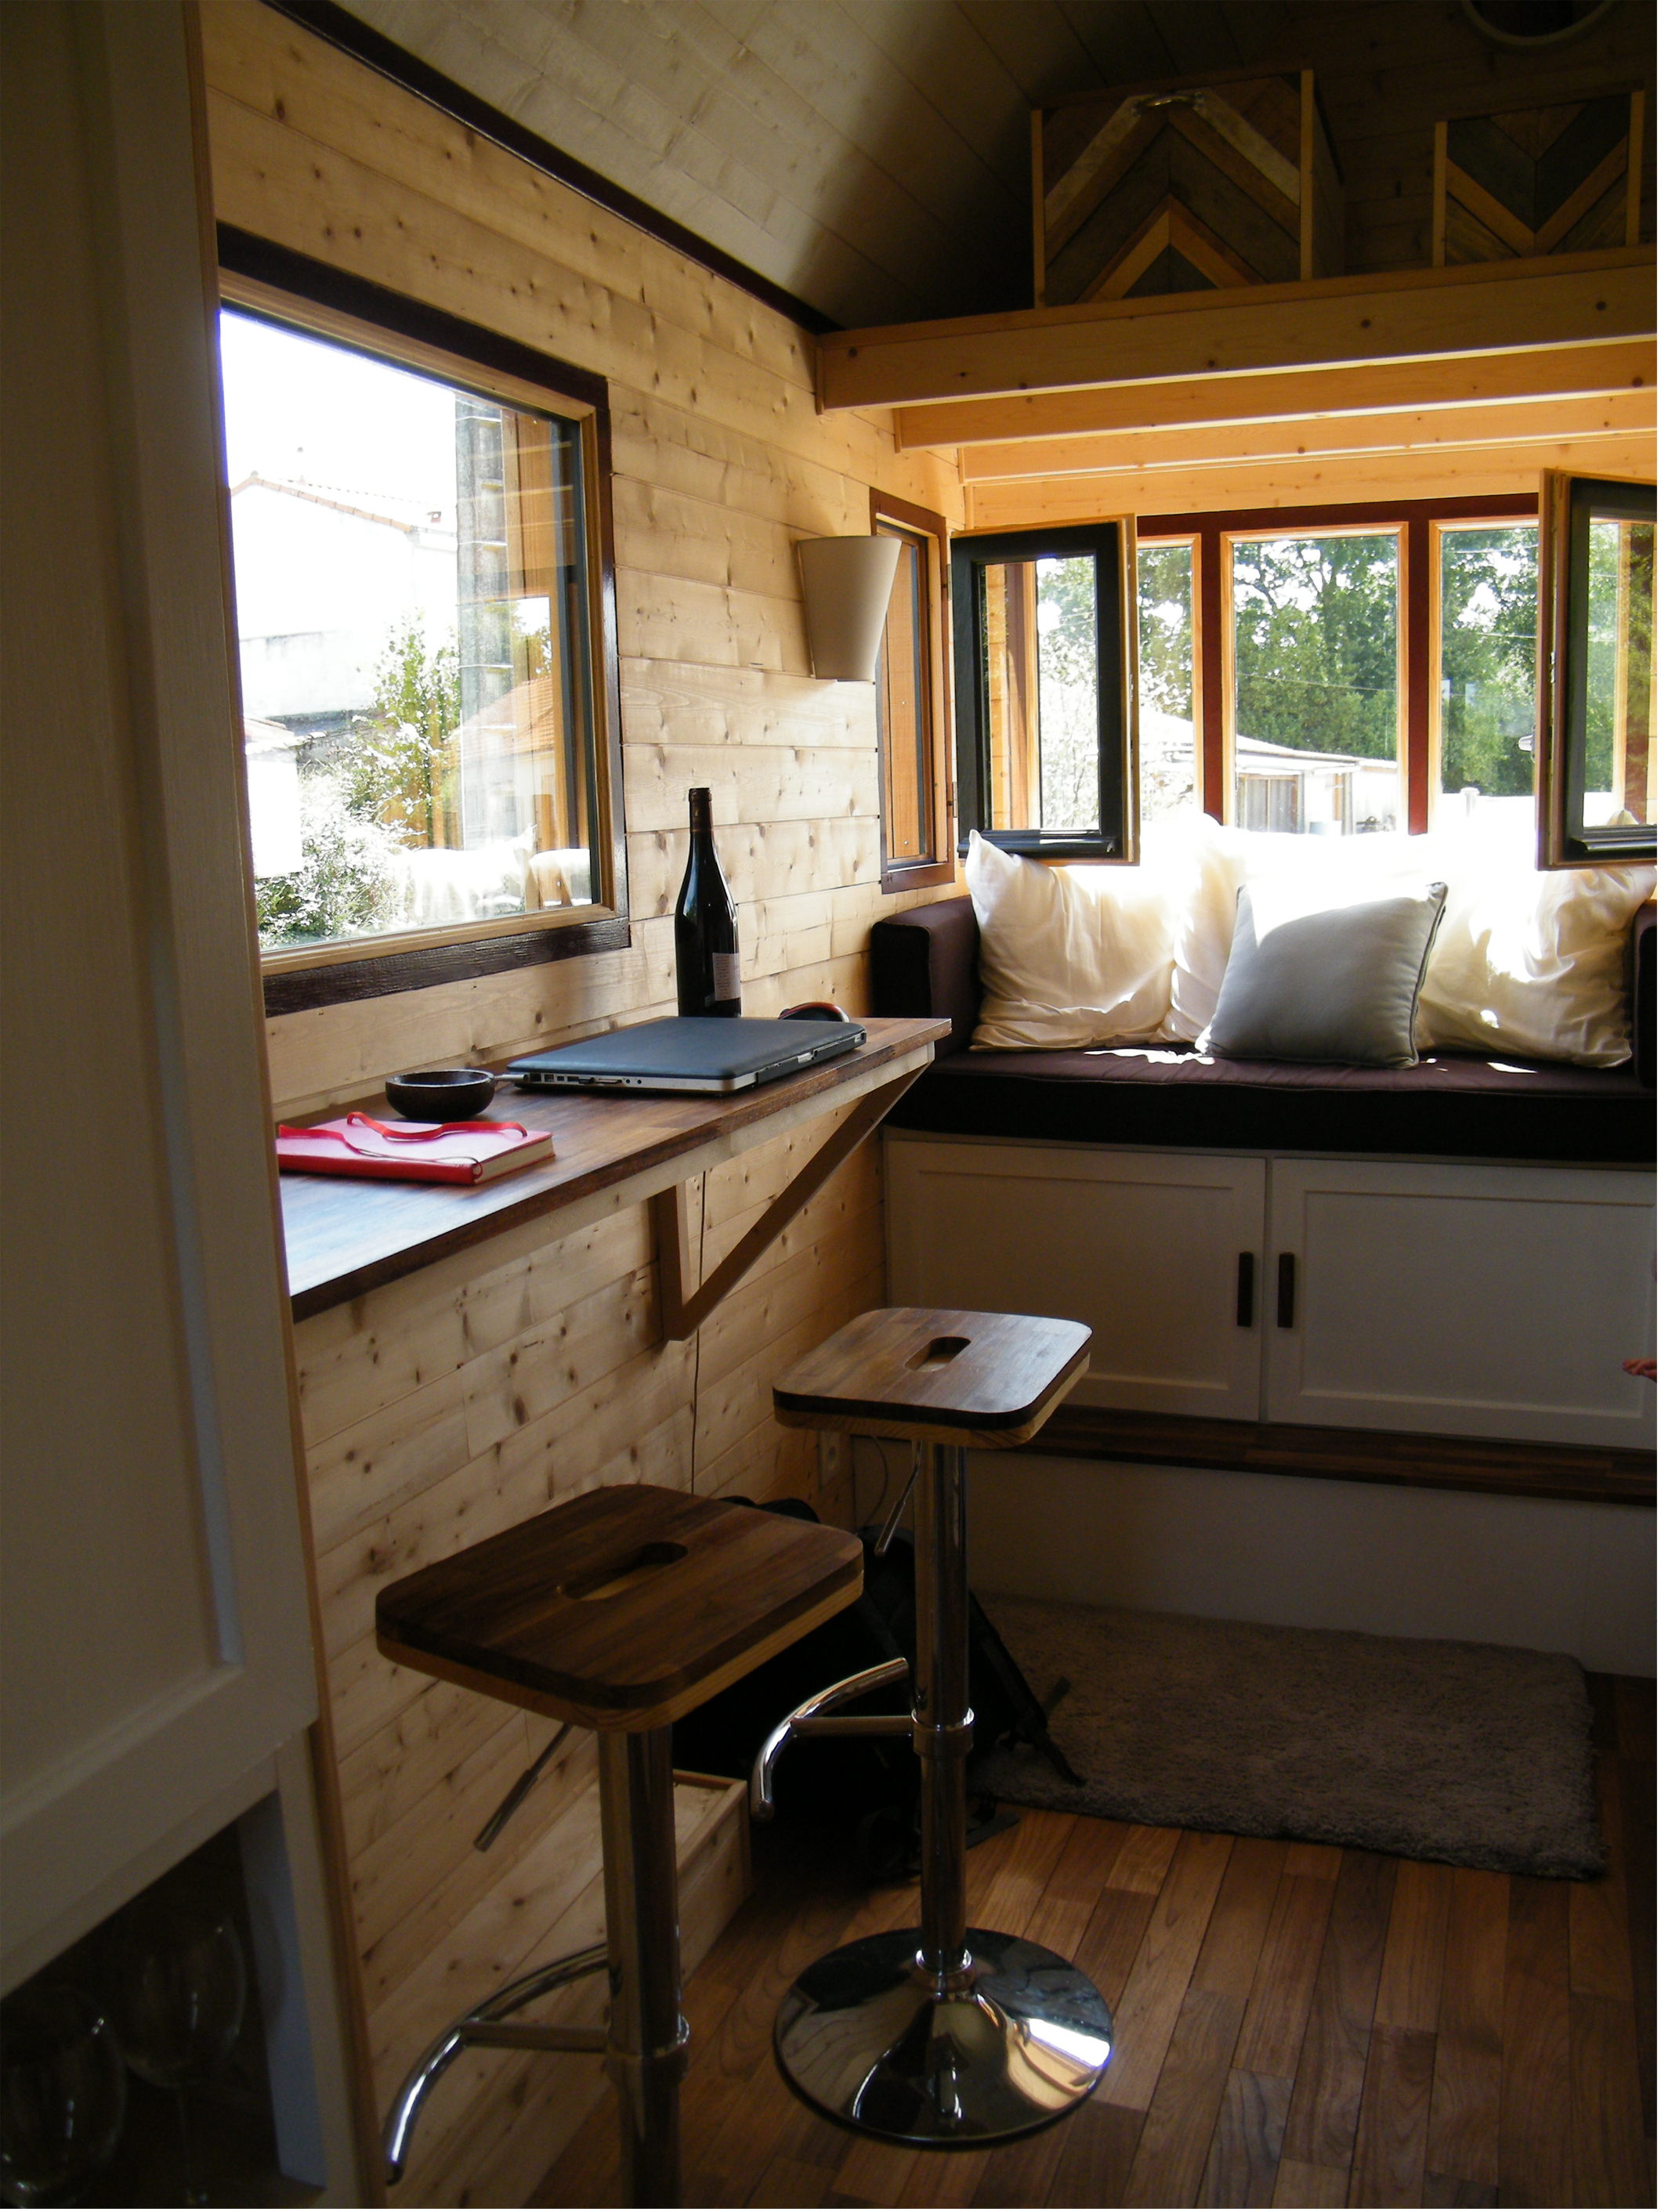 Une tiny house la fran aise nomm e baluchon 2 me for Le moi interieur